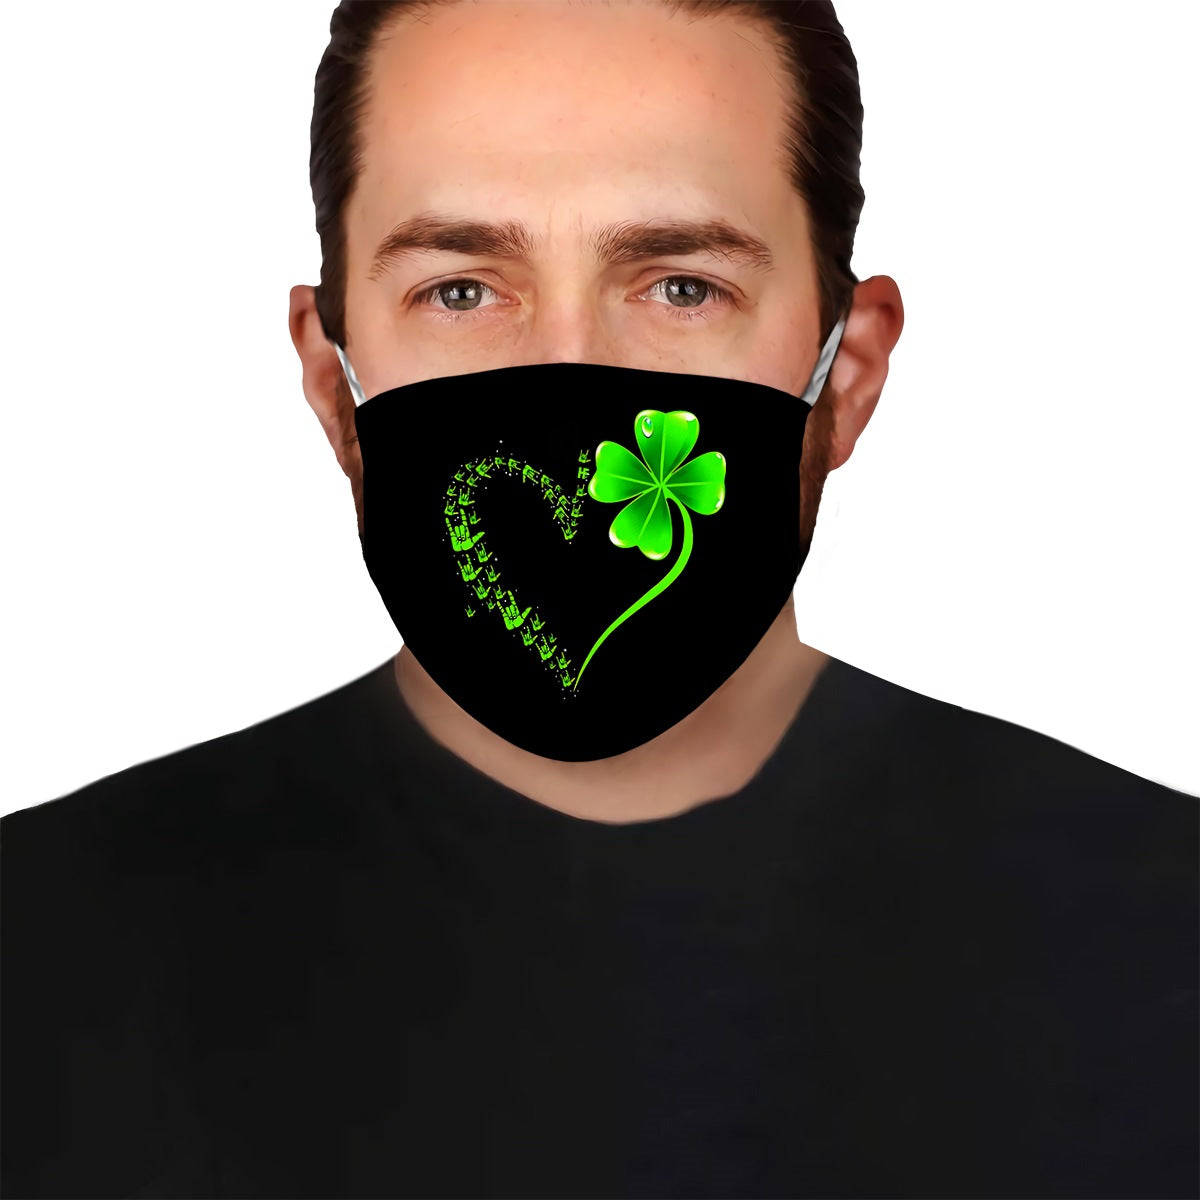 Deaf Awareness Green Clover EZ07 2504 Face Mask - Hyperfavor